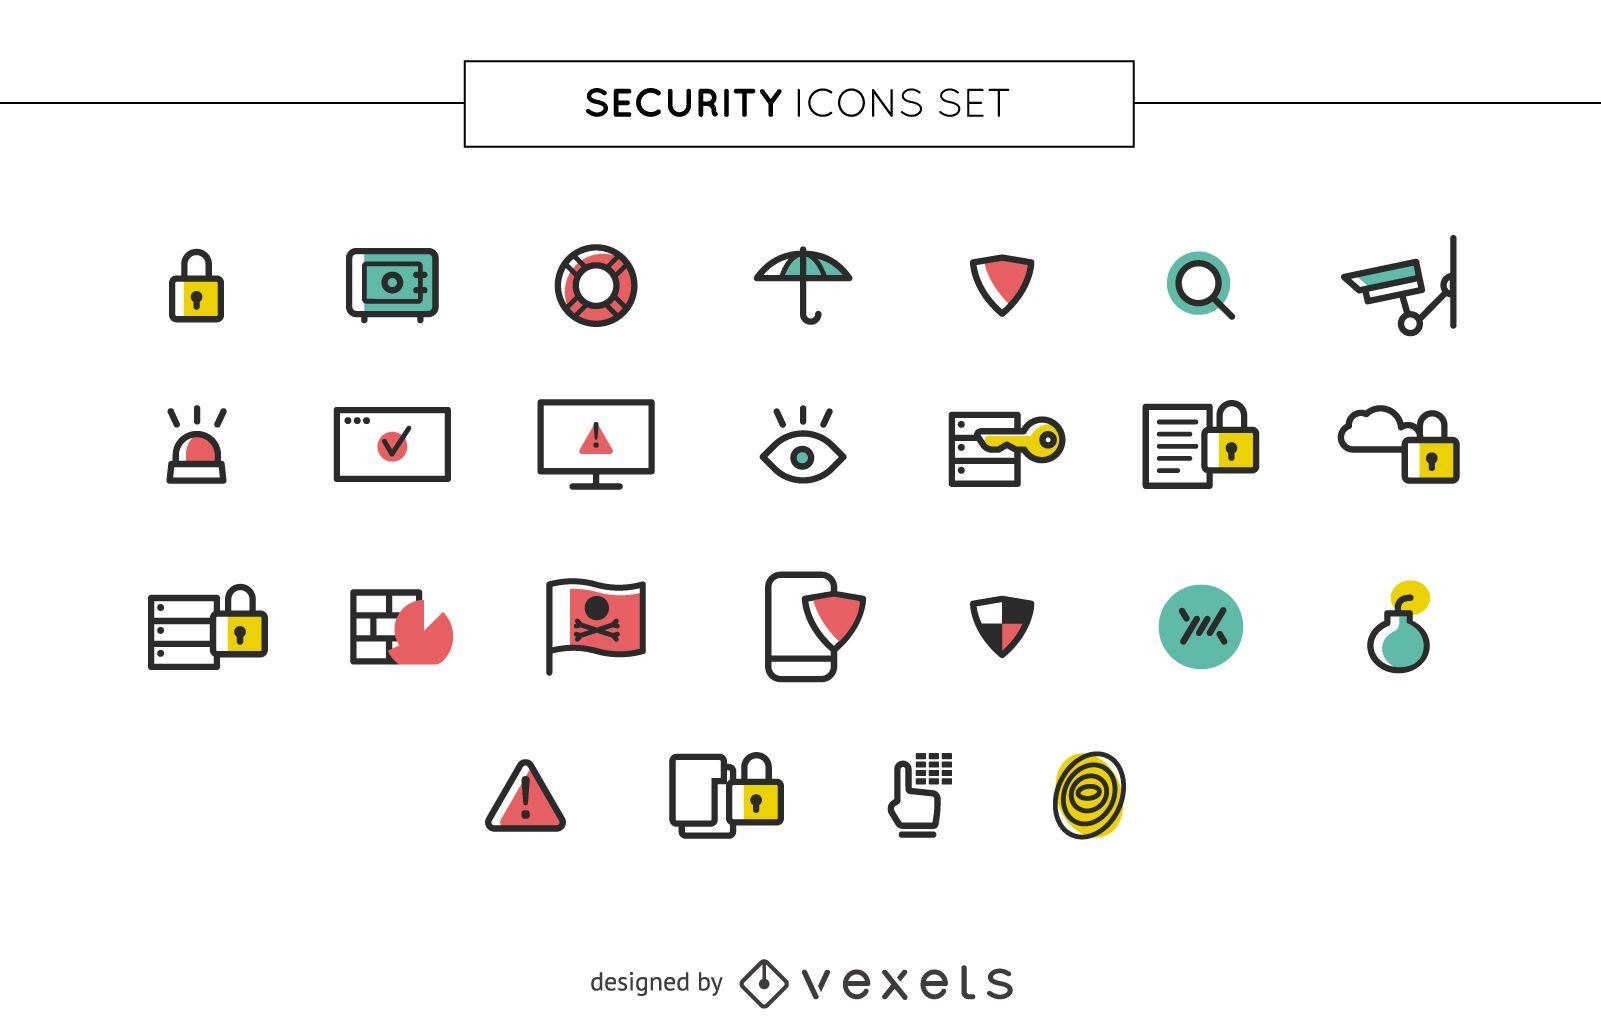 Stroke security icons set